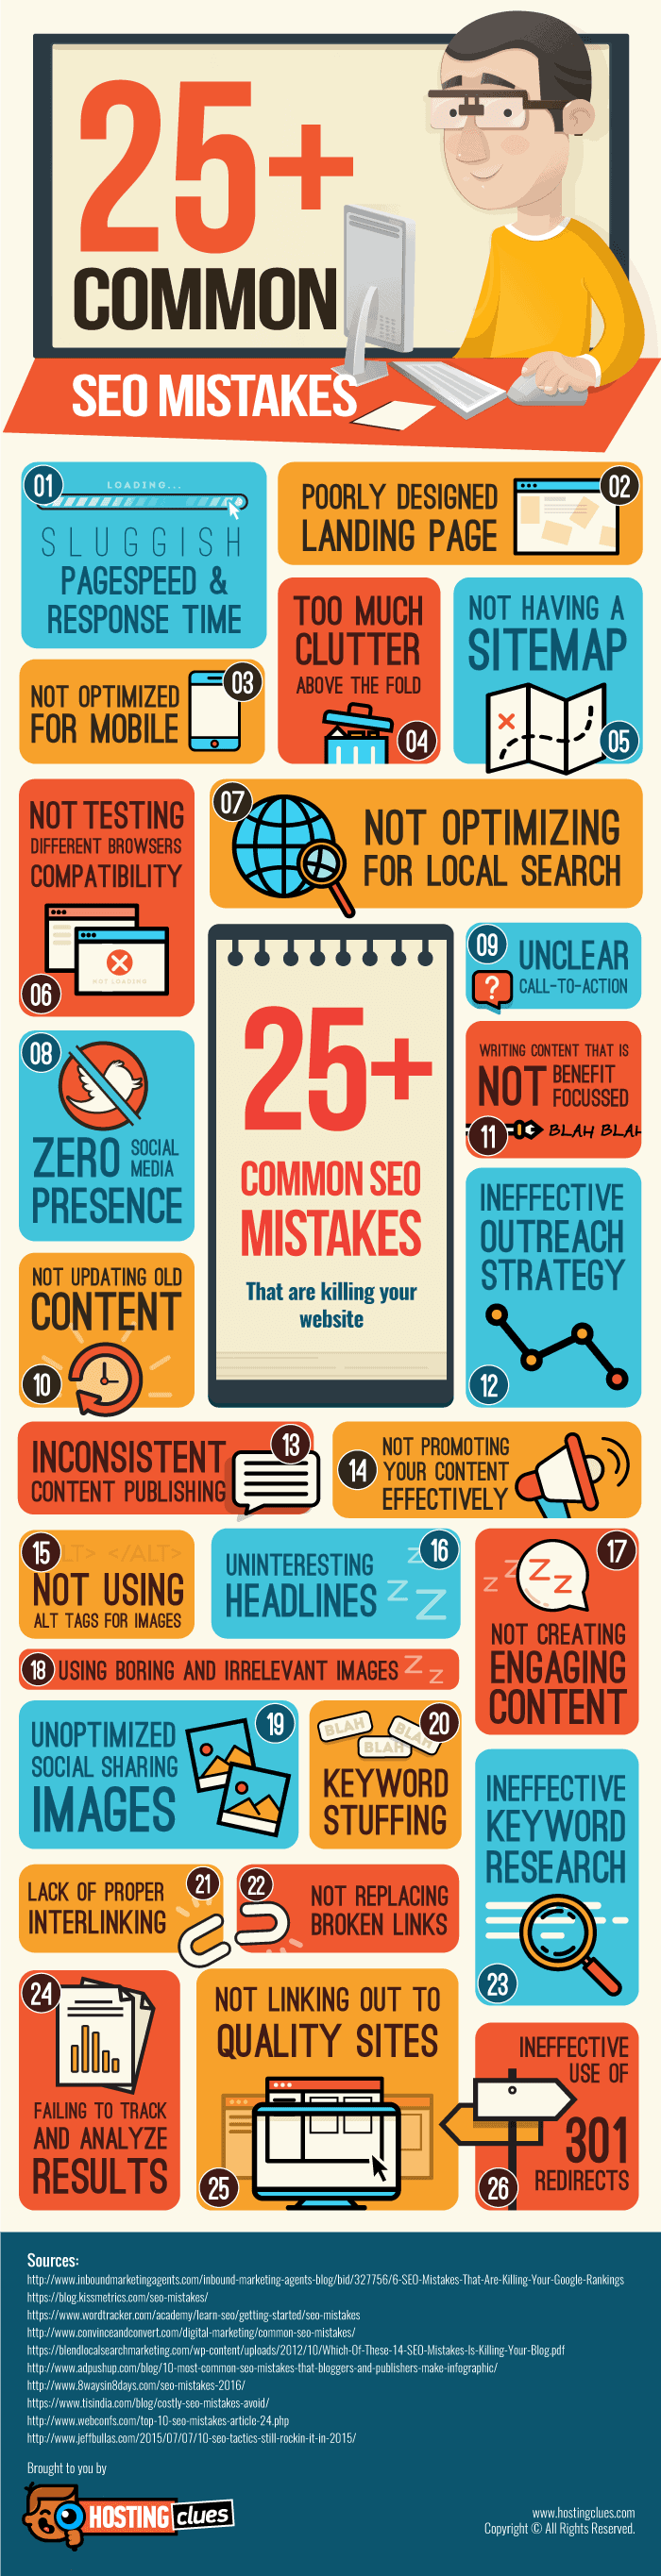 Common SEO Mistakes Infographic